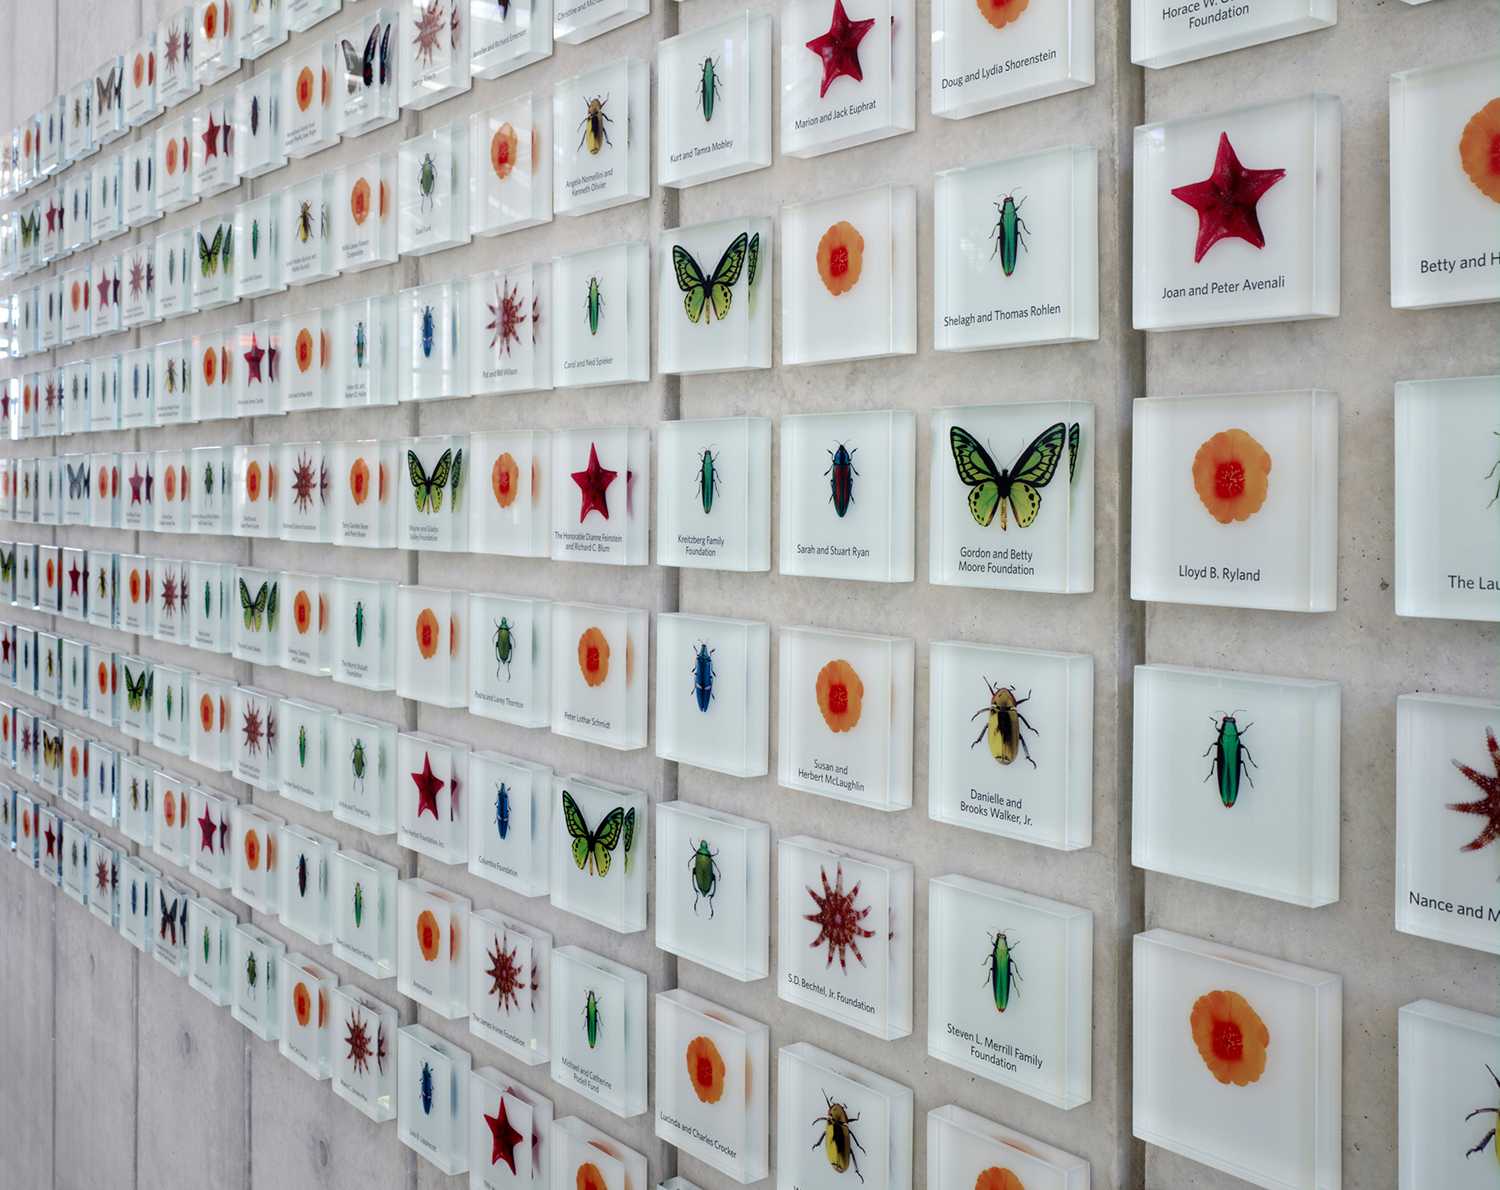 The donor wall was created as a stylized specimen drawer, complete with botanical and insect replicas whose rarity indicated the donor level.